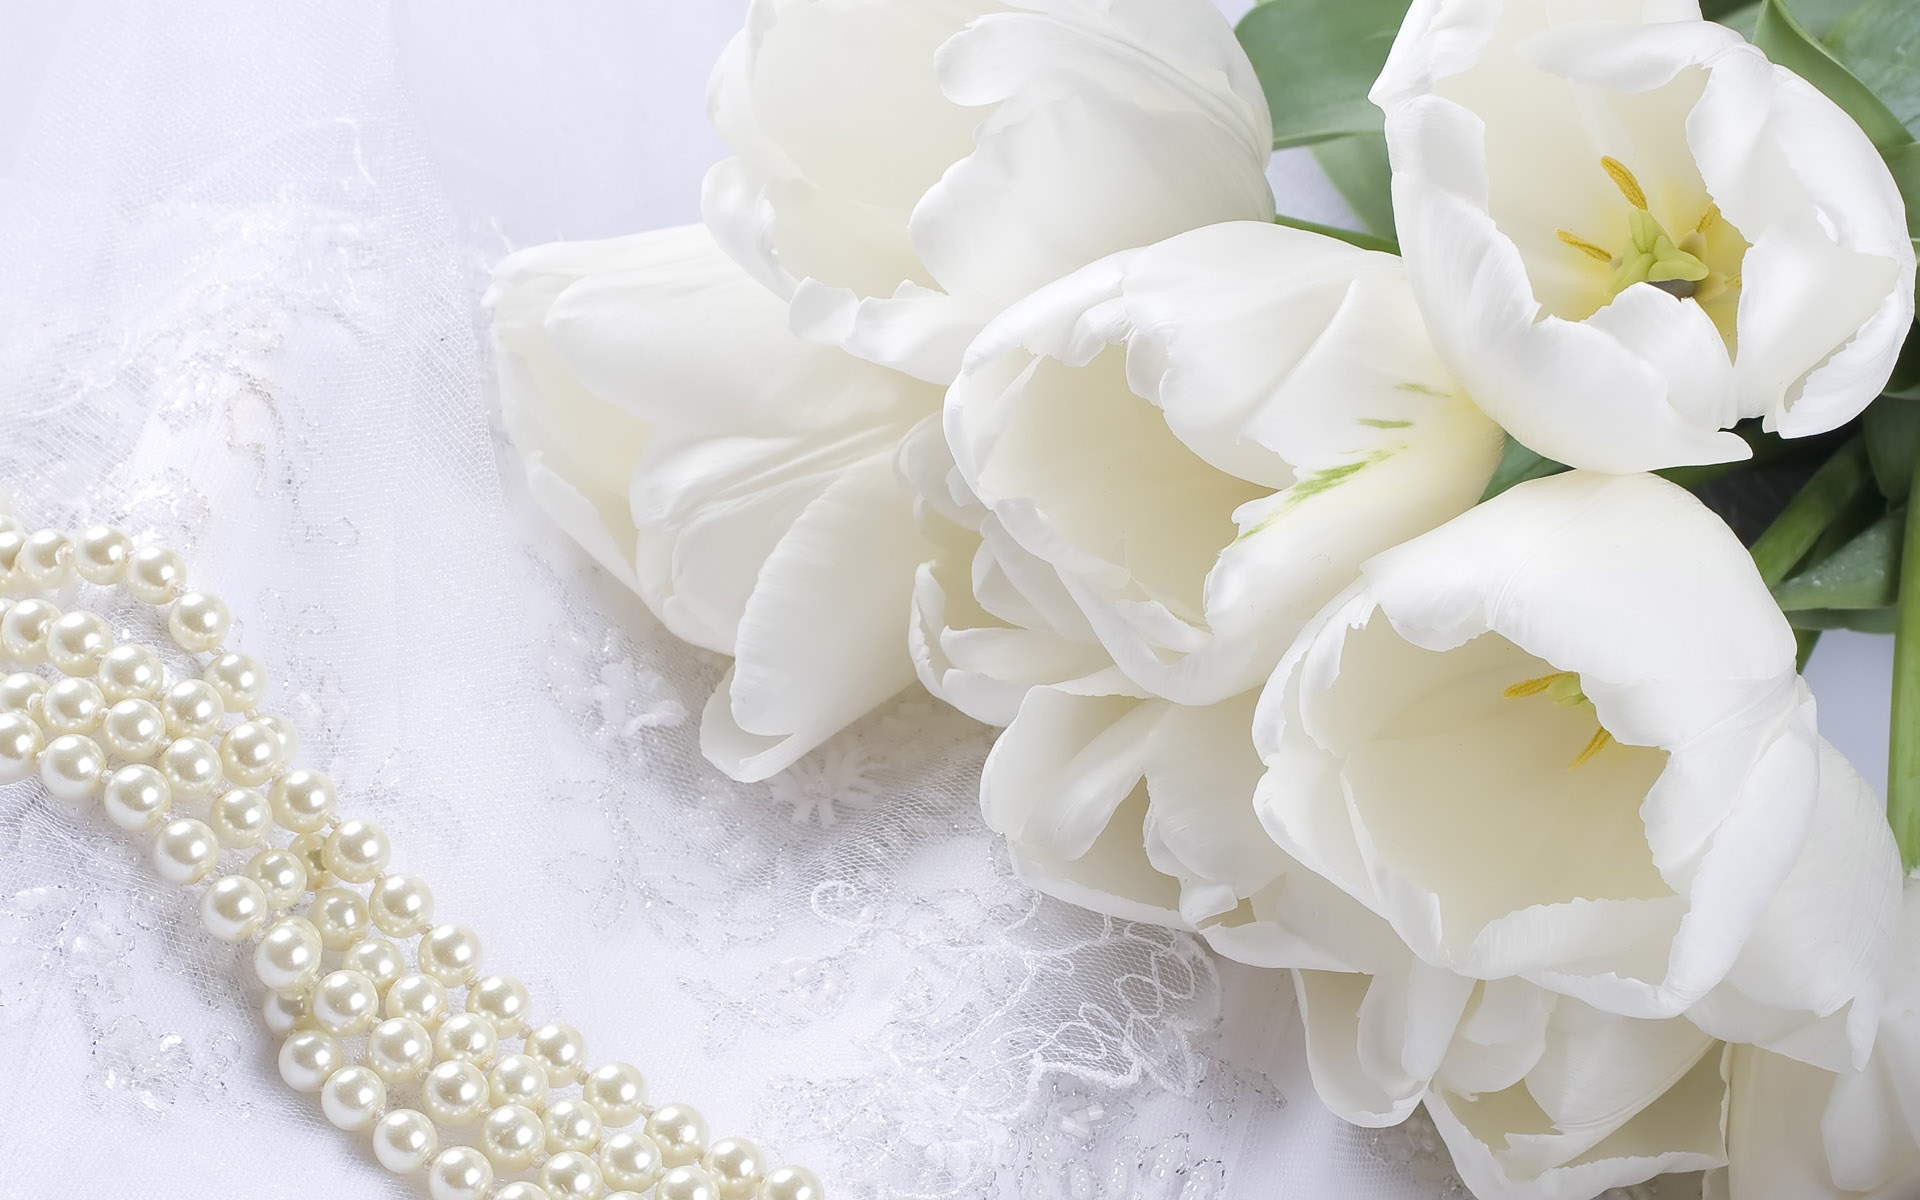 Flower White Background Download Free Hd Wallpapers For: Flowers Wallpaper White Desktop #4771 Wallpaper